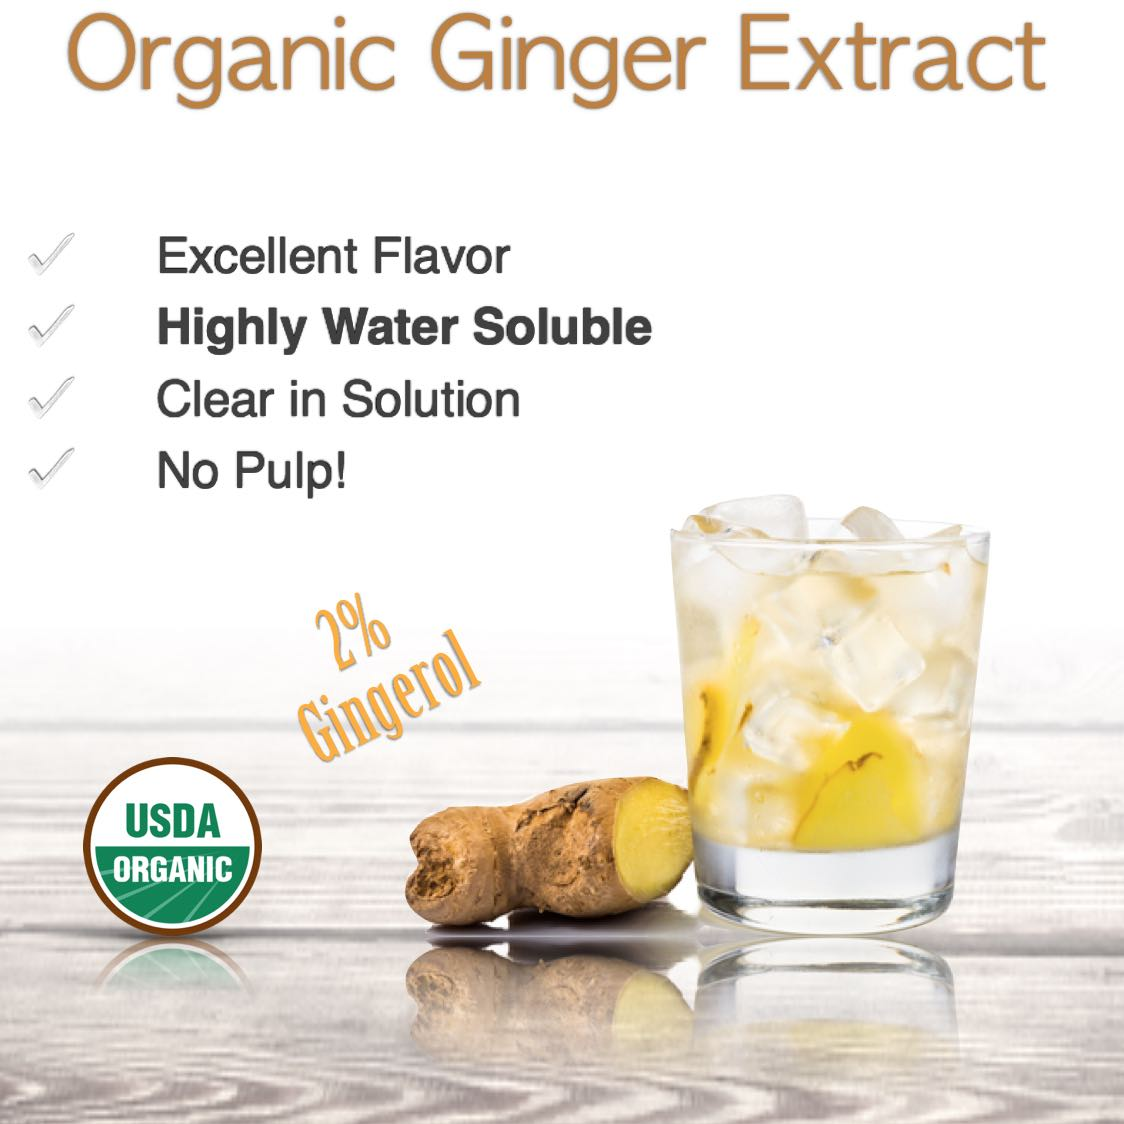 Organic Ginger Extract